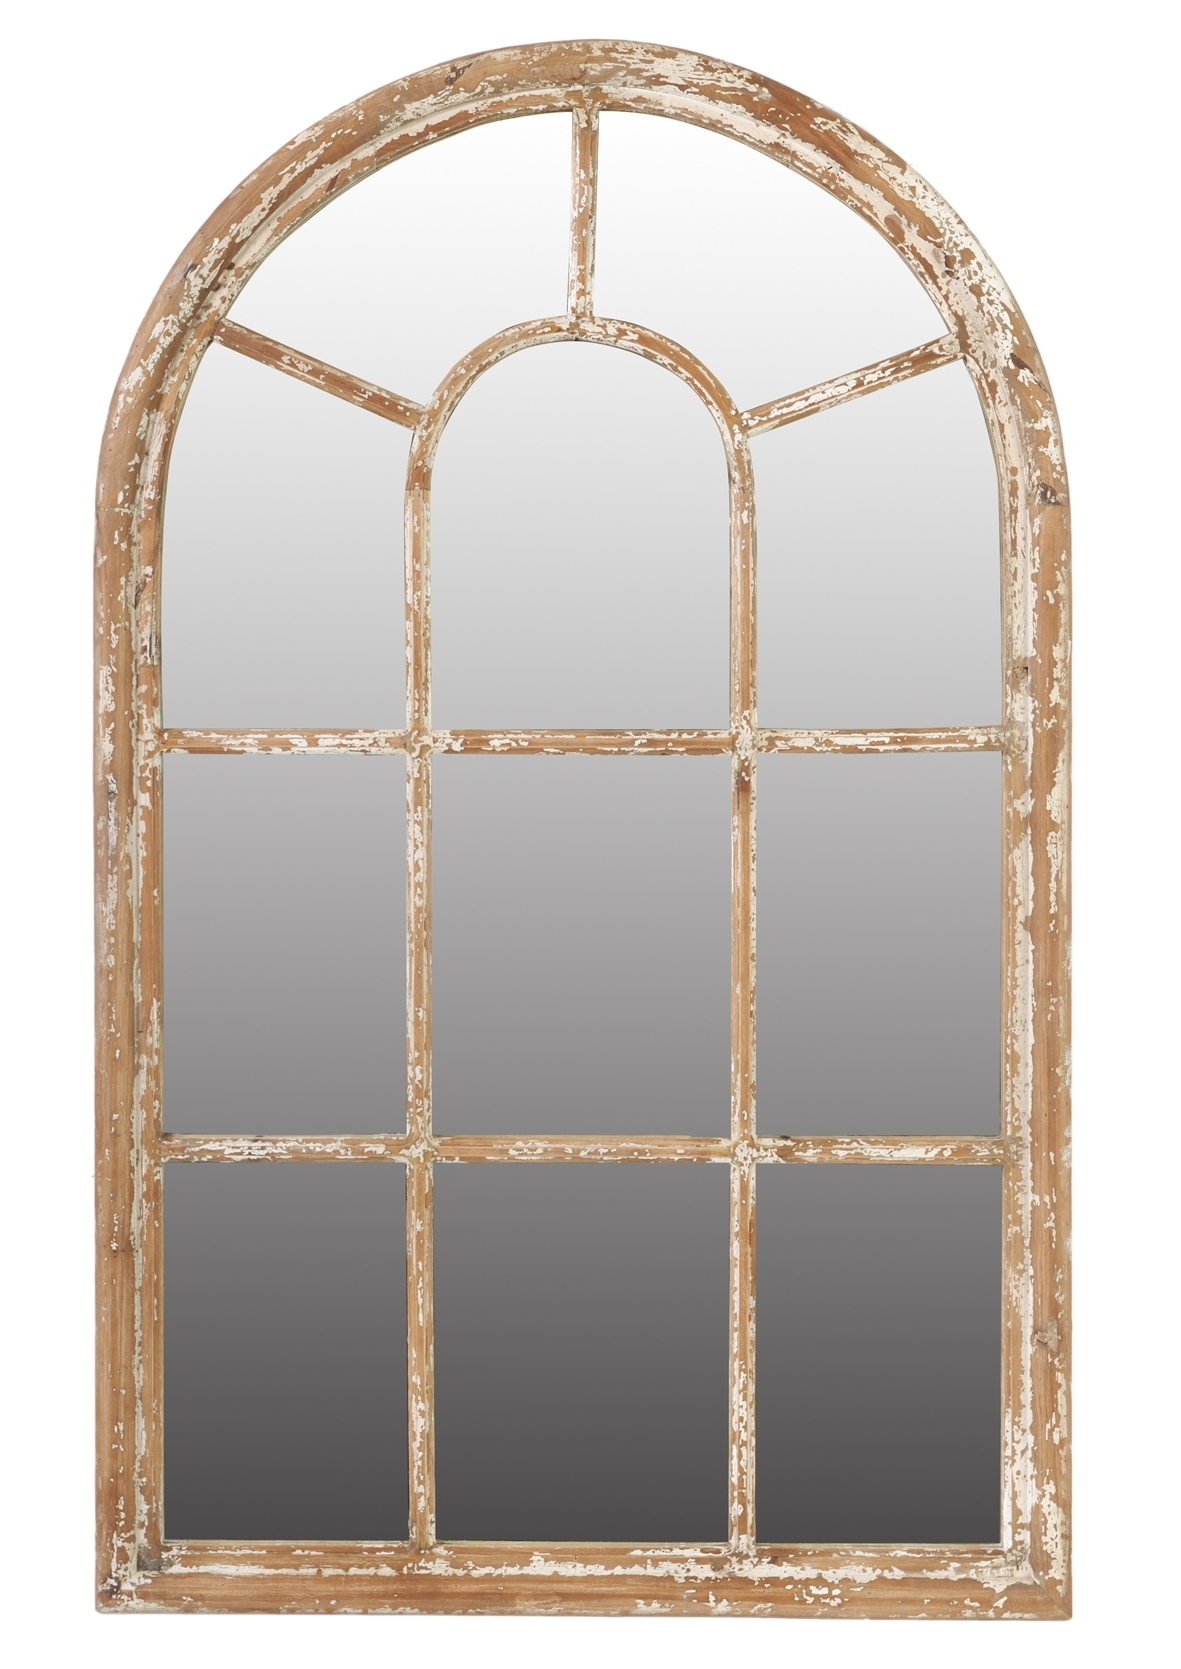 Fresh Creative Arched Window Mirror With Shutters 19757 Pertaining To Wall Mirror With Shutters (Image 10 of 15)